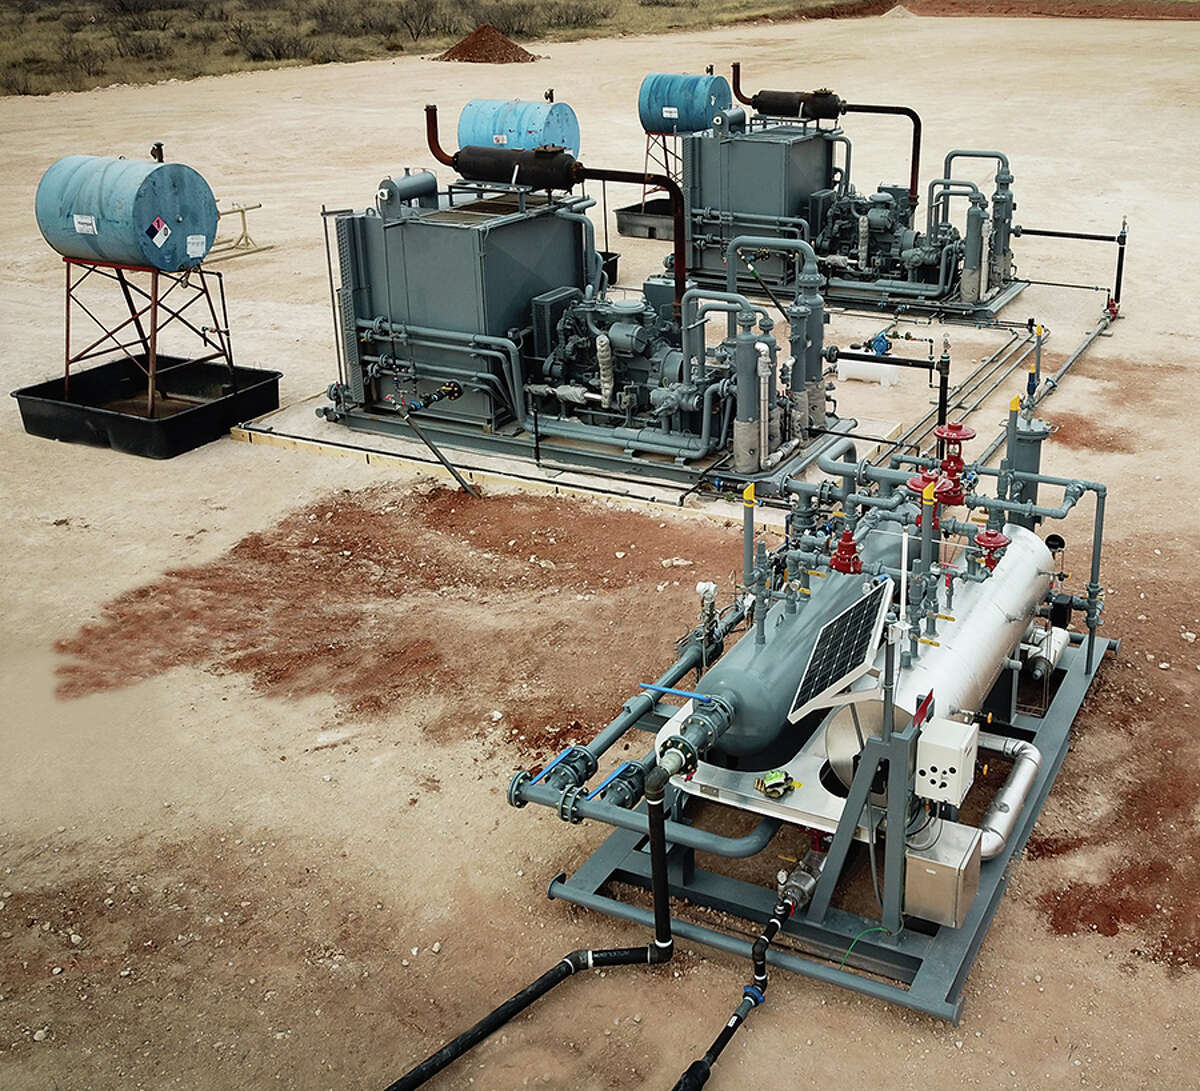 The QuickSet by Liftrock skid-mounted gas lift compressor system is not only quicker to install but captures 100 percent of fugitive methane emissions. Approximately 23 of the compressors are deployed at 19 sites in the Permian Basin.